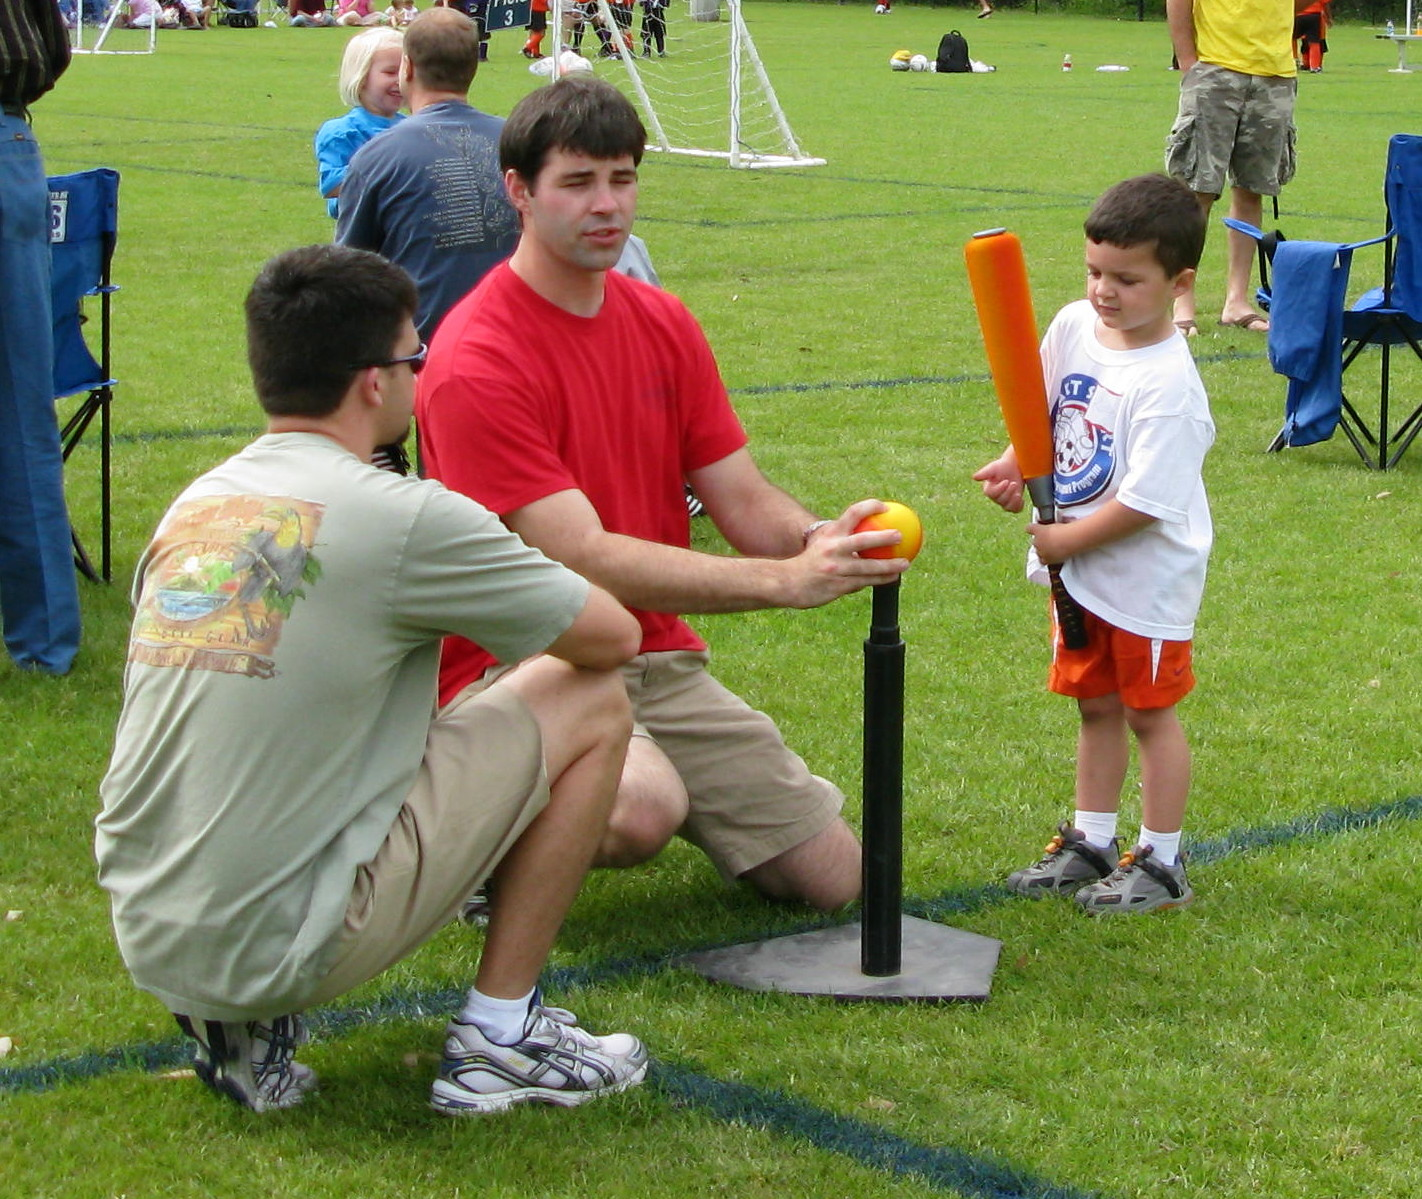 Two adults helping child at t ball